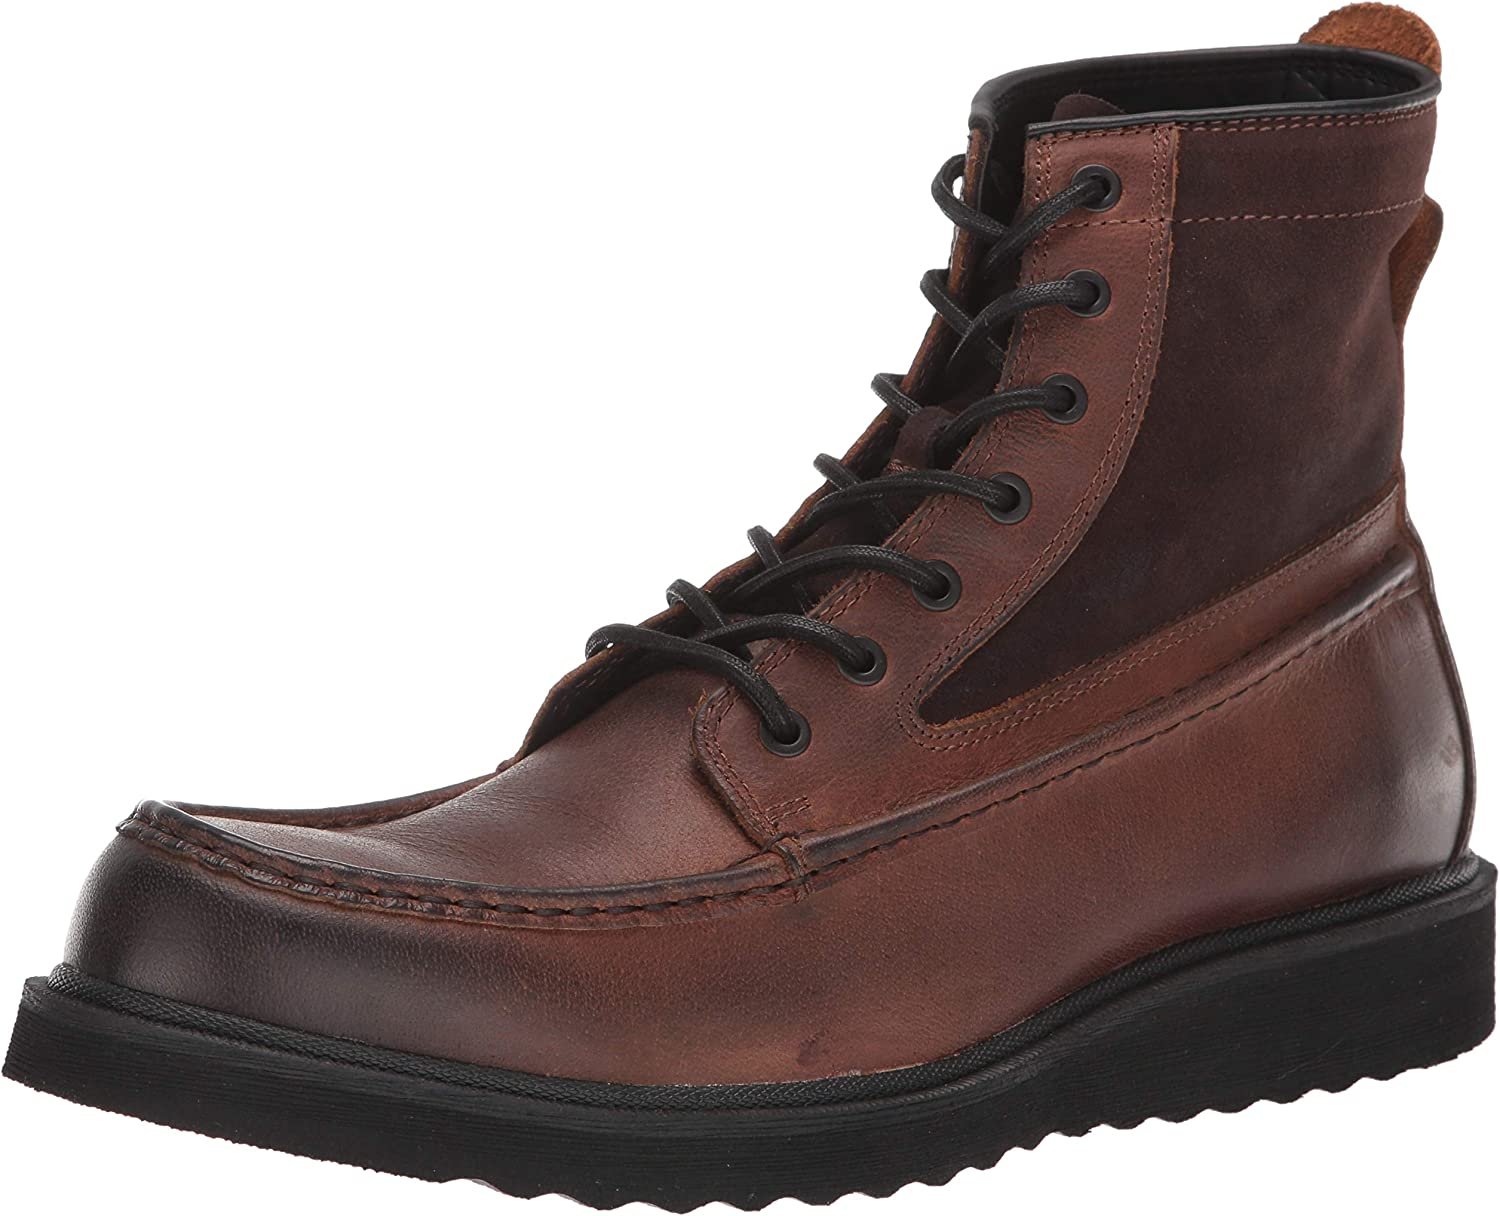 Frye and Co. Very popular Men's Montana Fashion Moc Boot Max 53% OFF